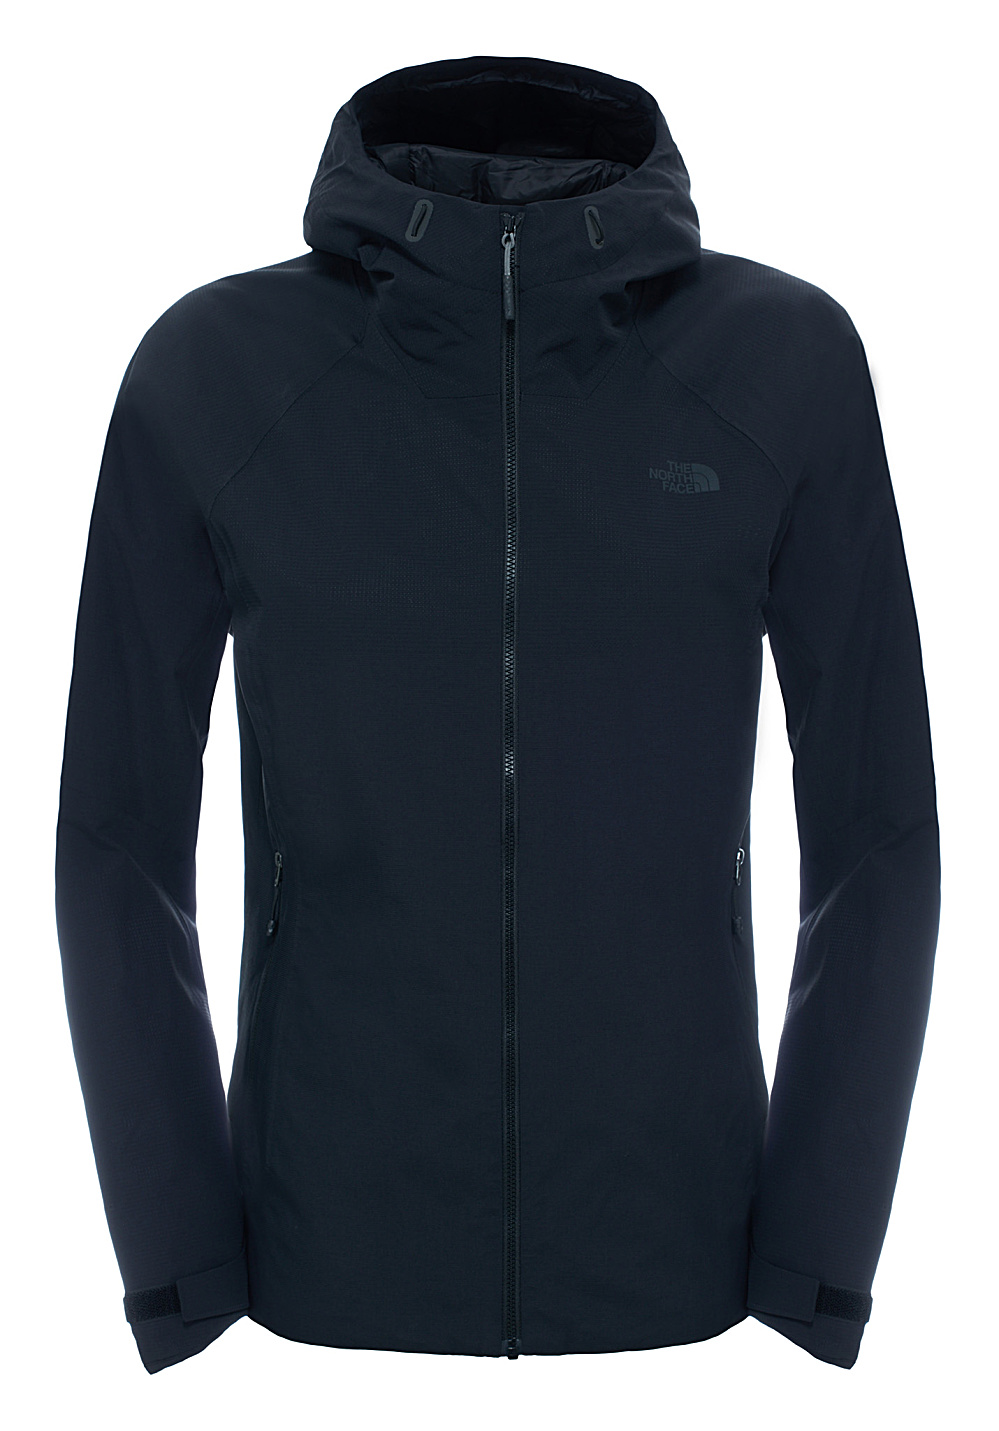 f4fa51419 THE NORTH FACE Fuseform Montro Insulated - Functional Jacket for Women -  Black